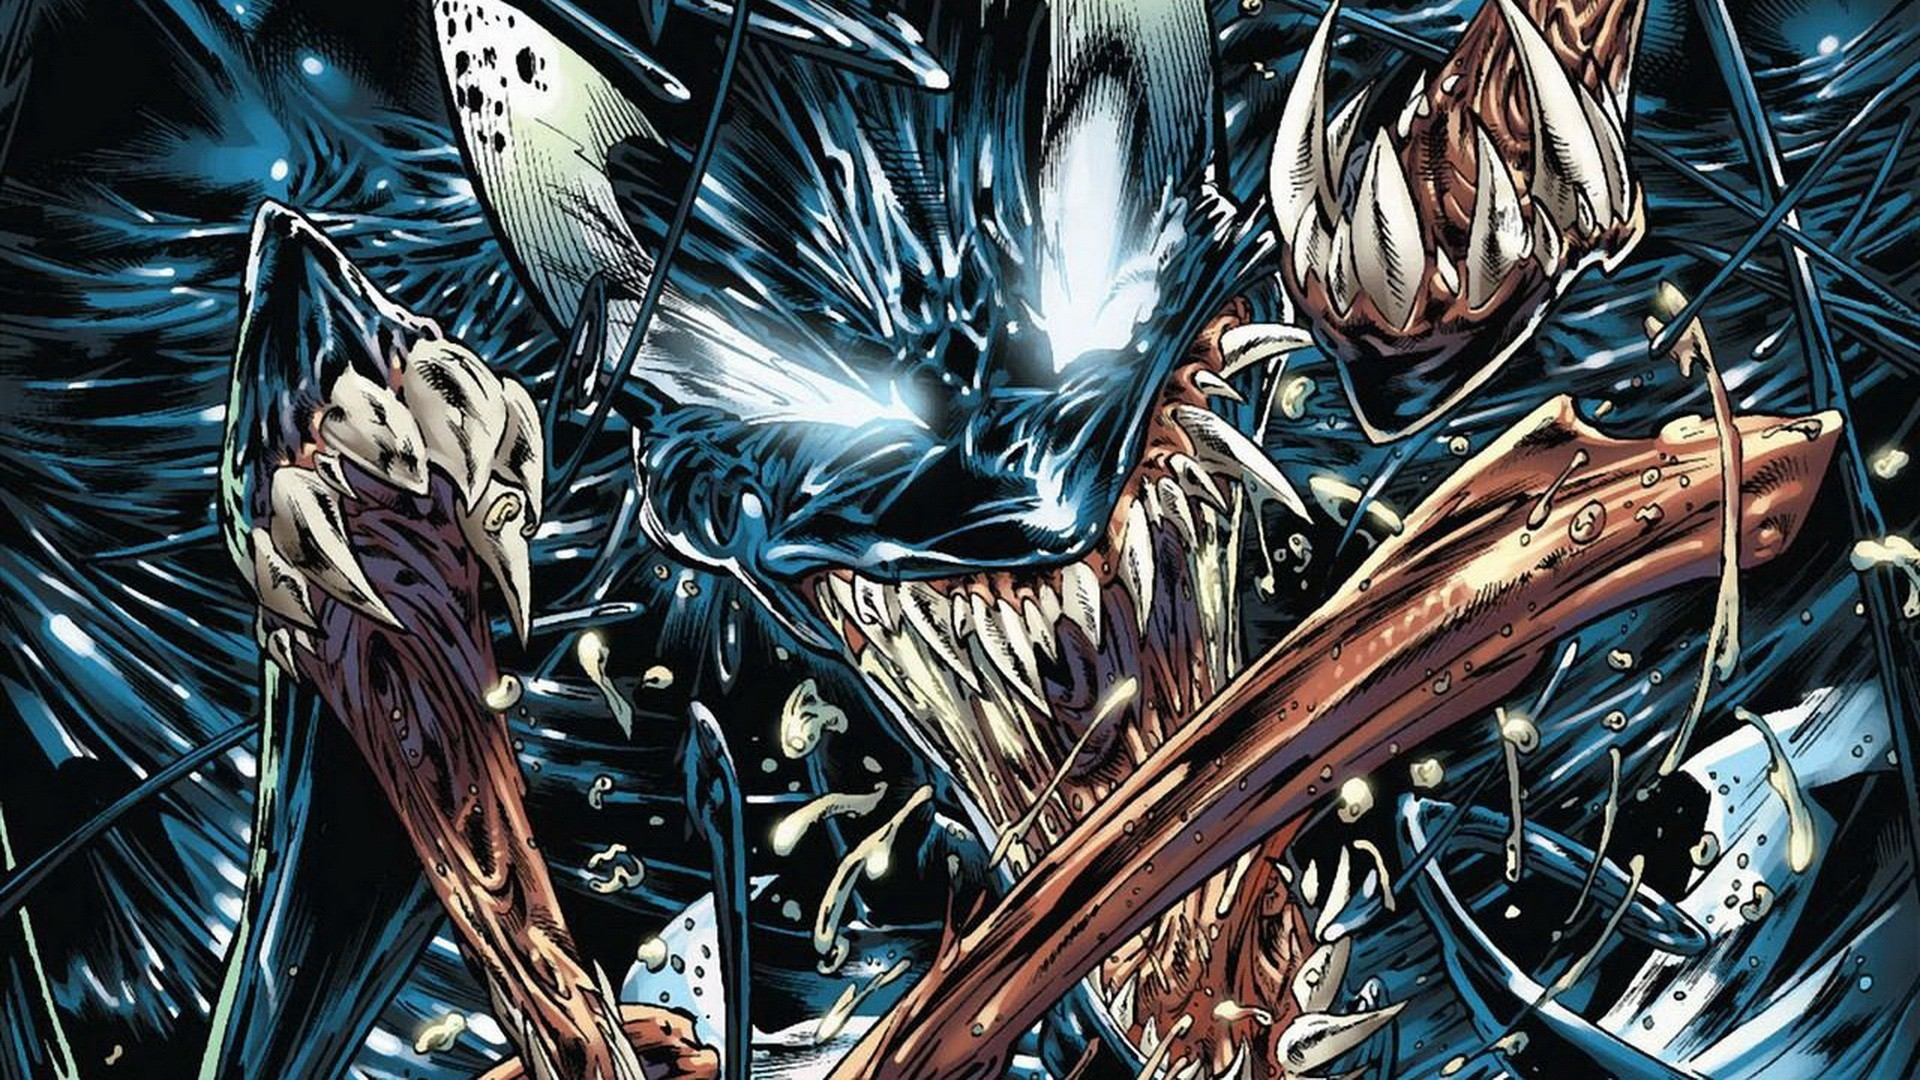 Res: 1920x1080, marvel venom wallpaper hd Venom Wallpapers Images Photos Pictures  Backgrounds